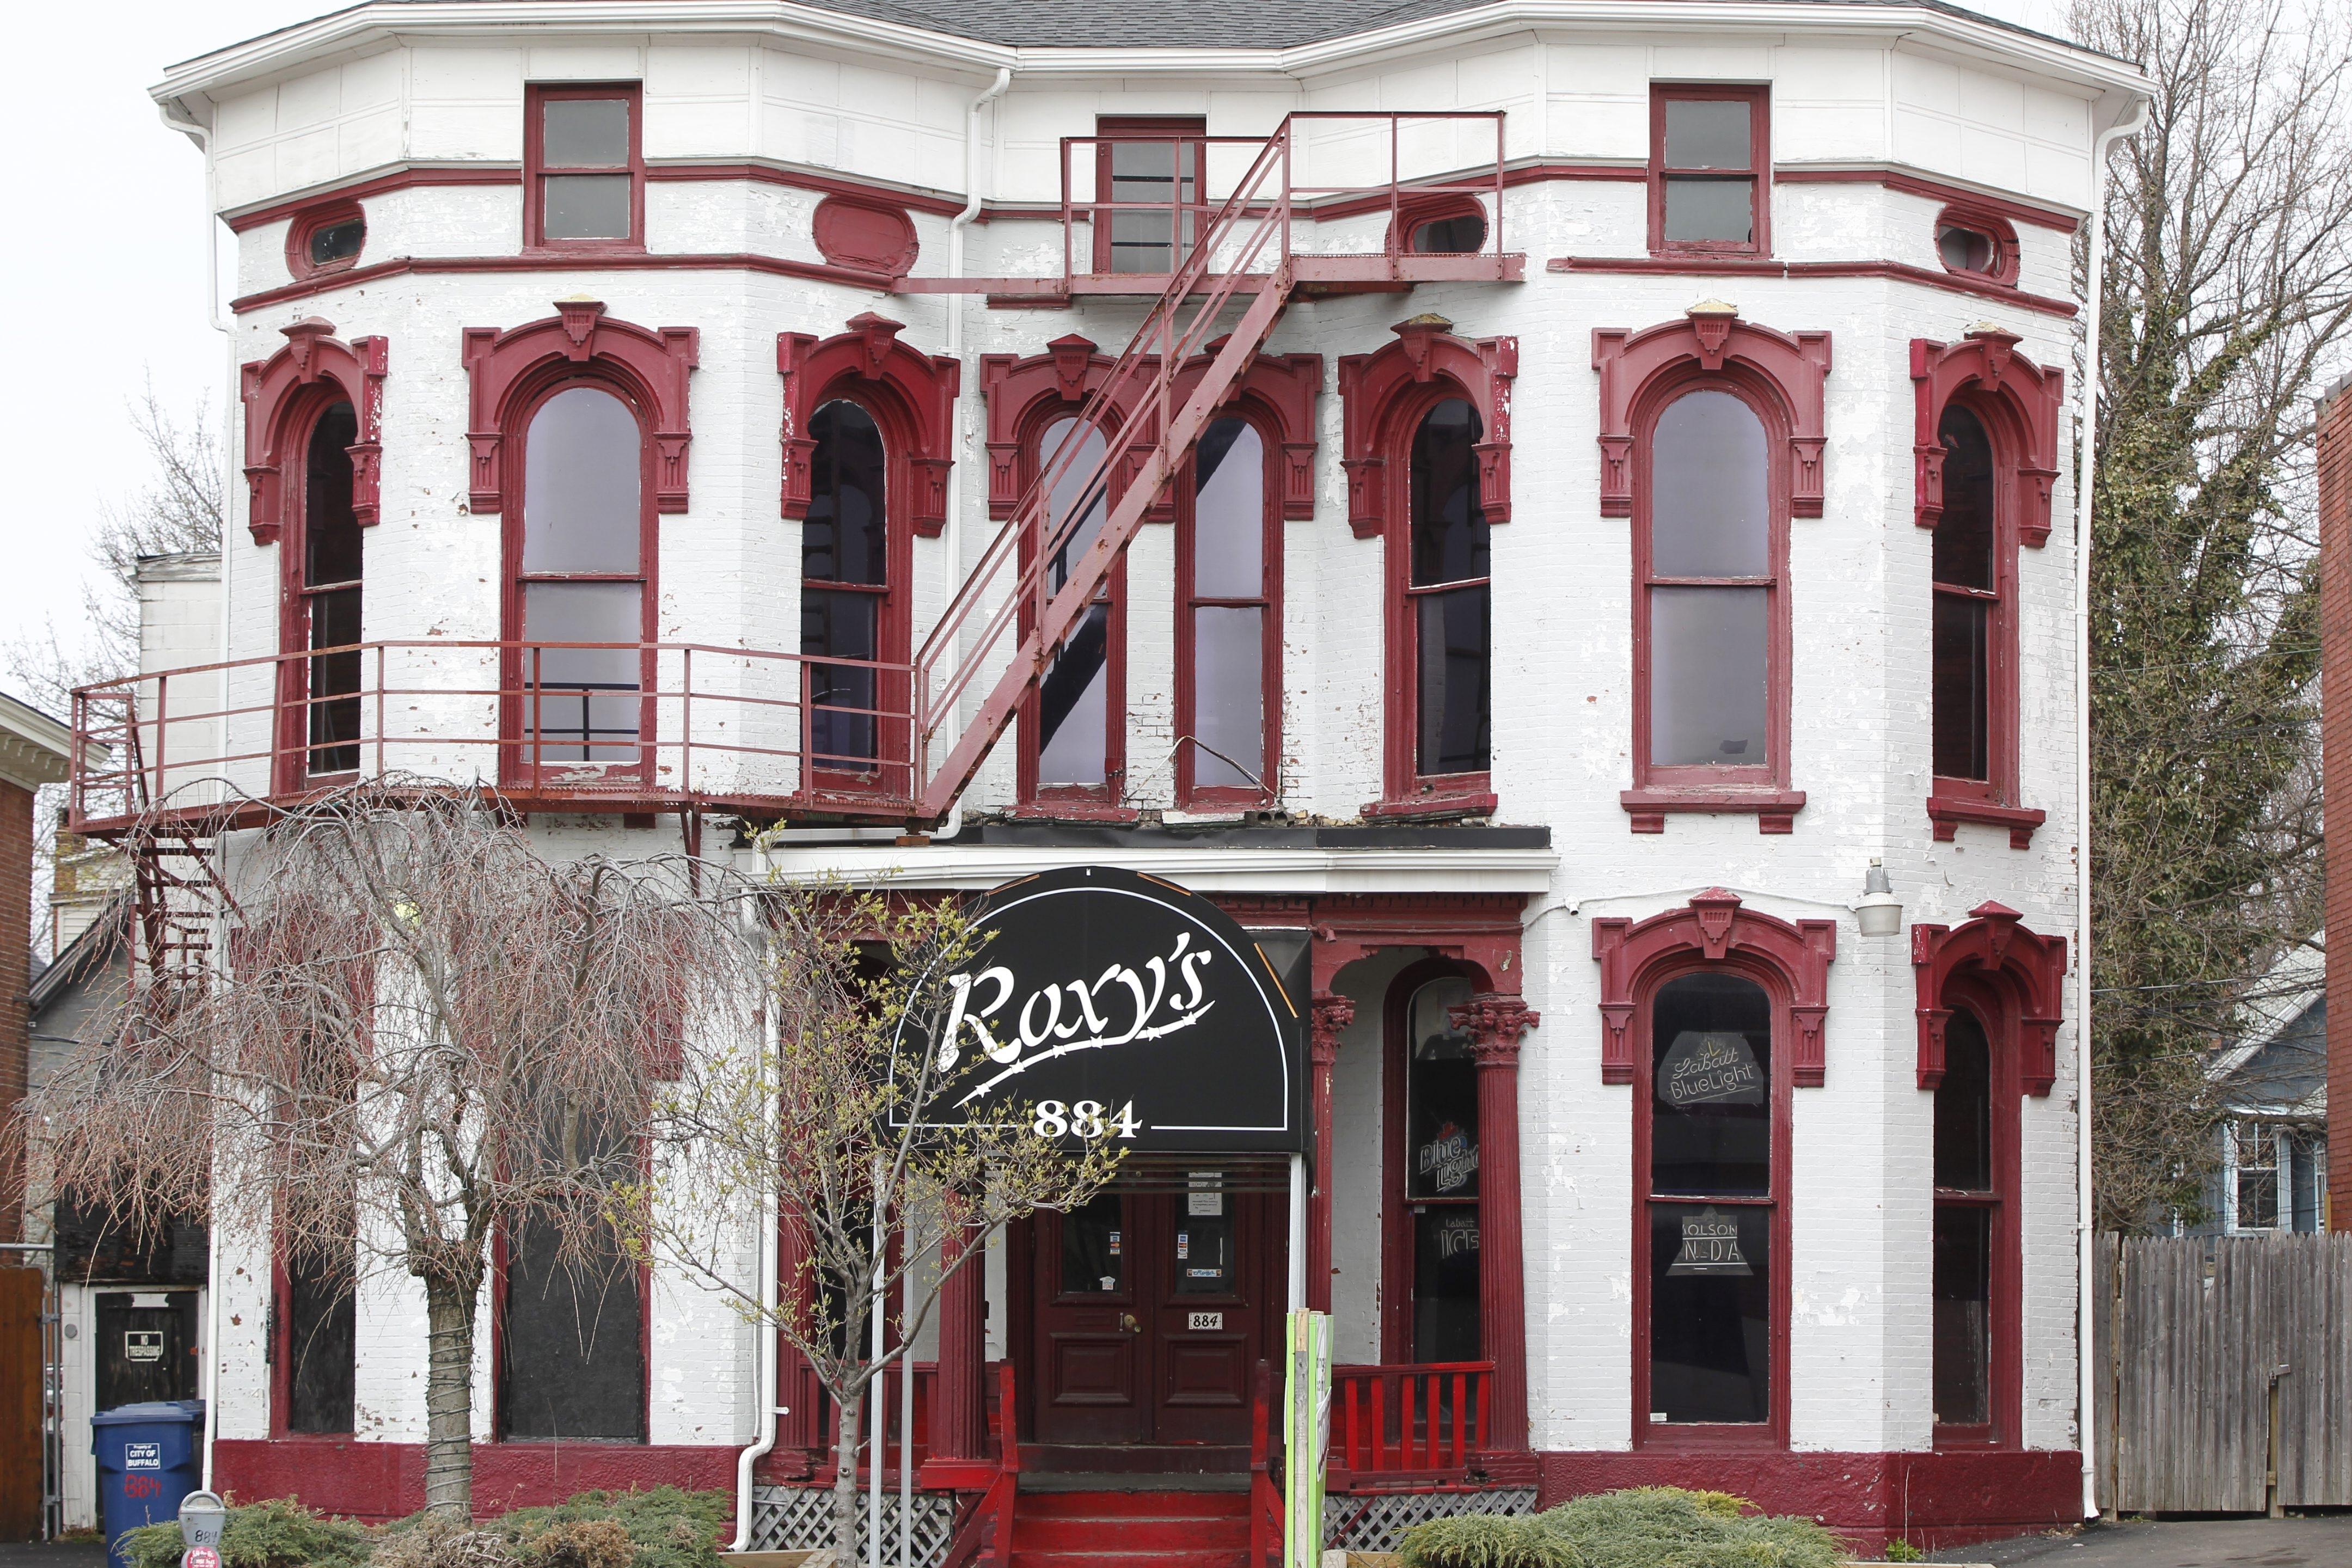 The new owner of the former Roxy's nightclub on Main Street wants to take advantage of the building's location near the Buffalo Niagara Medical Campus.